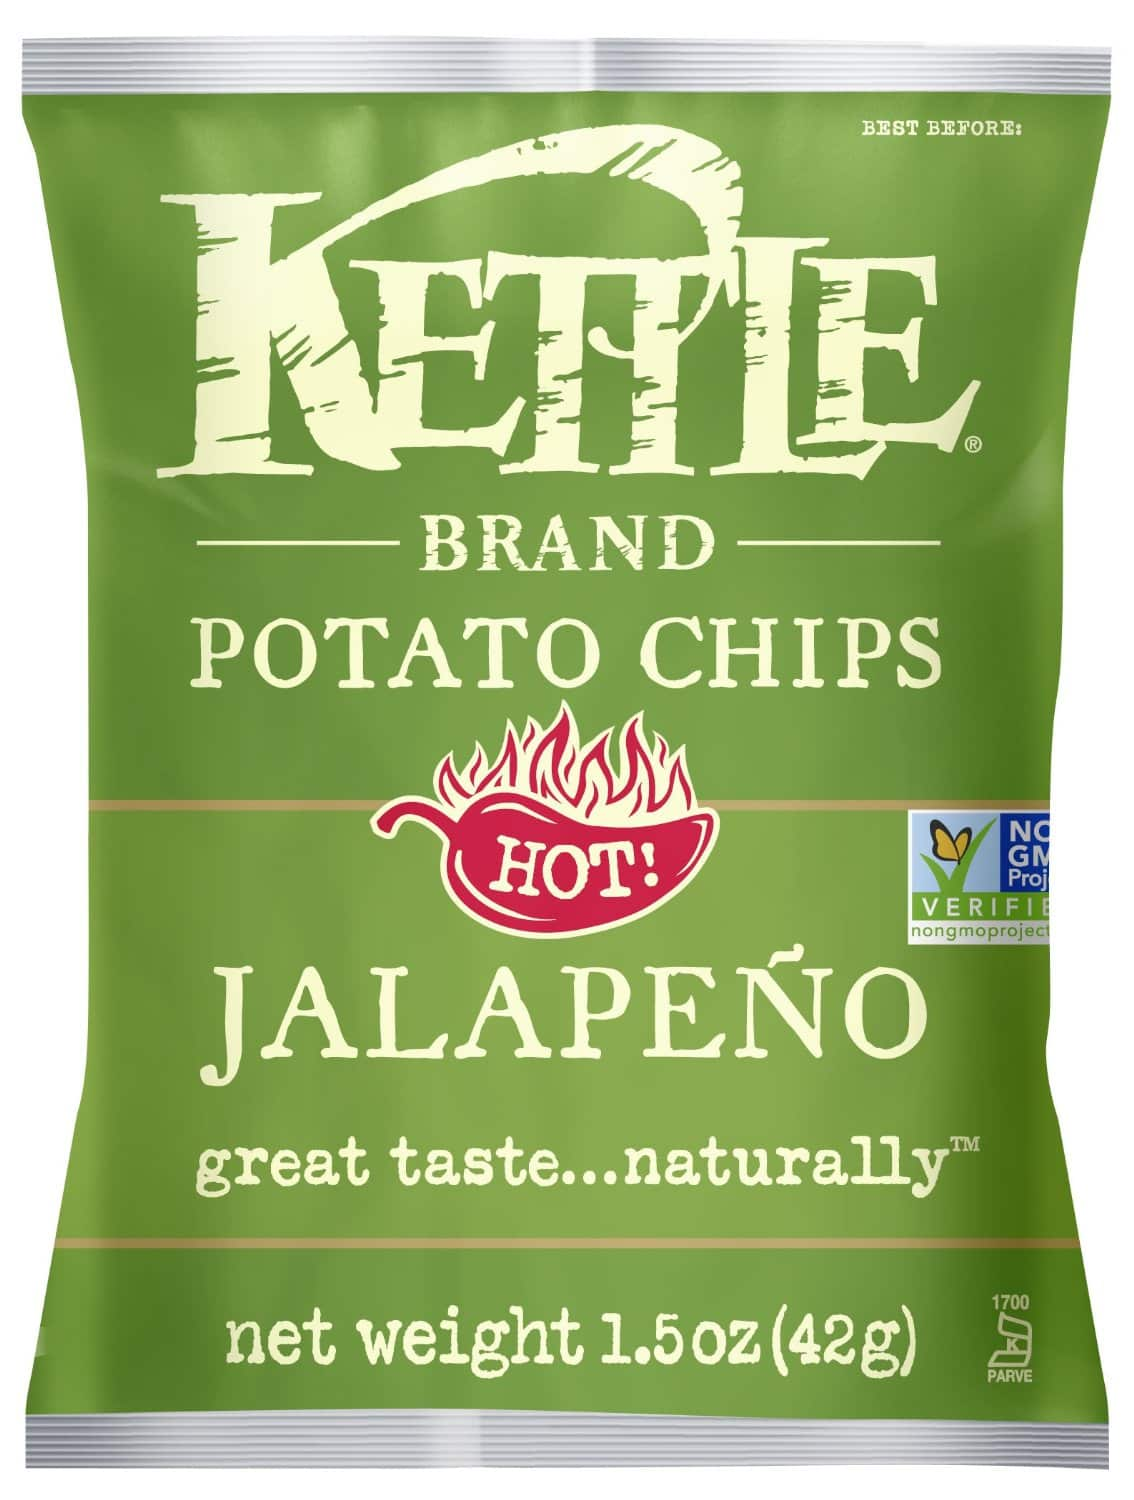 Prime Members: 24-Count 1.5oz Kettle Brand Potato Chips (Jalapeno)  $10.95 + Free Shipping